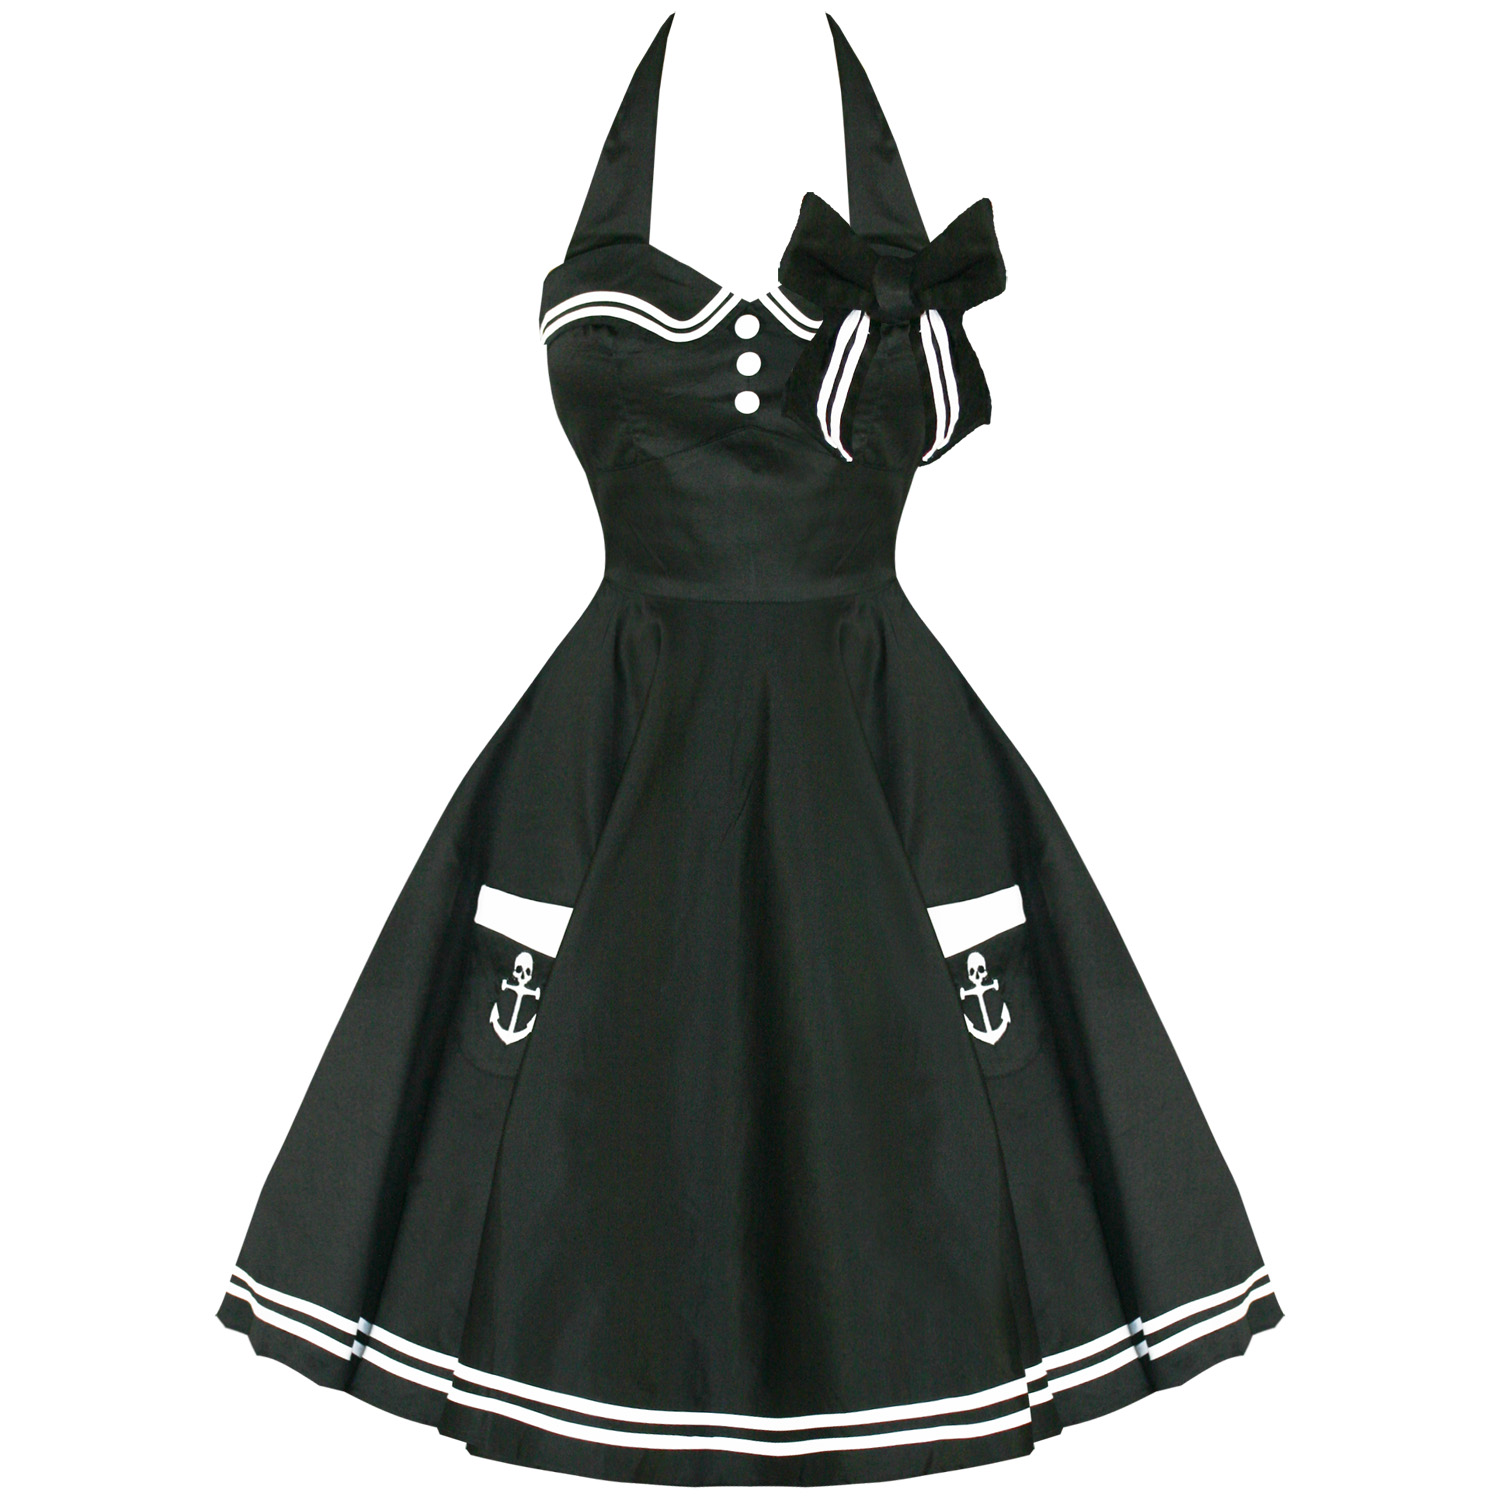 kleid damen hell bunny motley 50er schwarz rockabilly sailor pin up 1950er ebay. Black Bedroom Furniture Sets. Home Design Ideas